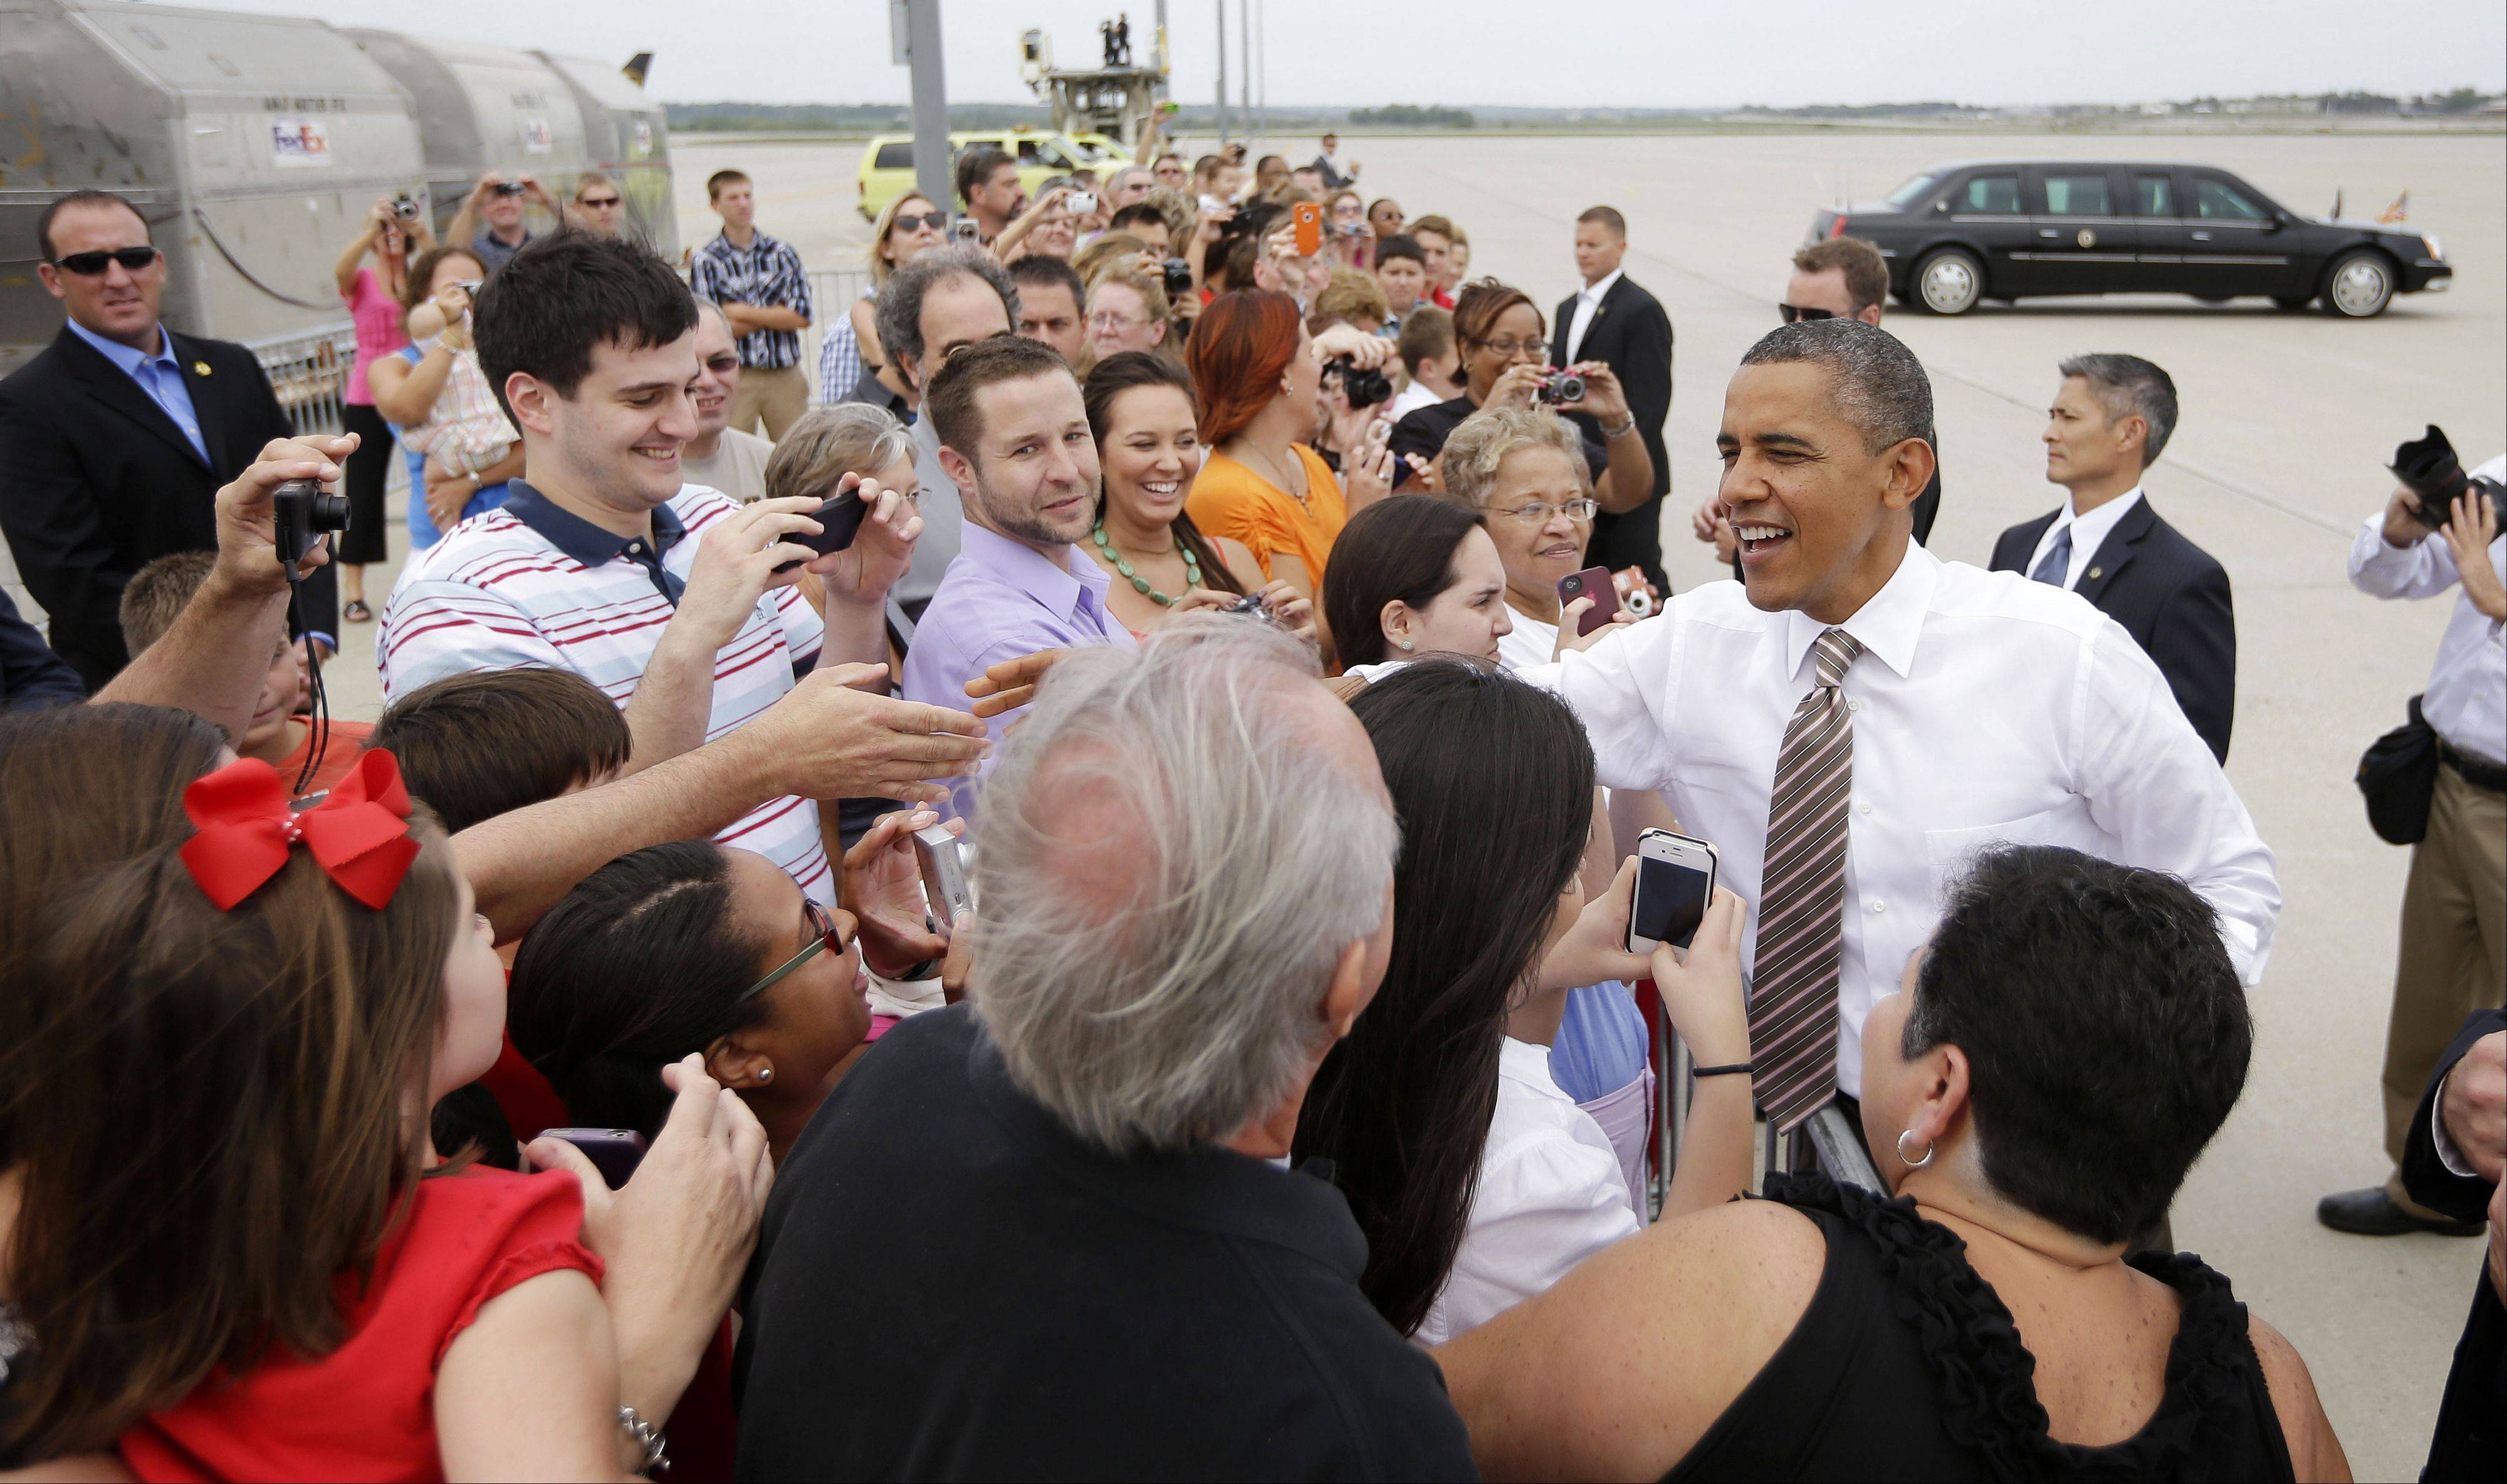 President Barack Obama greets guests on the tarmac upon his arrival at Des Moines International Airport, Saturday.